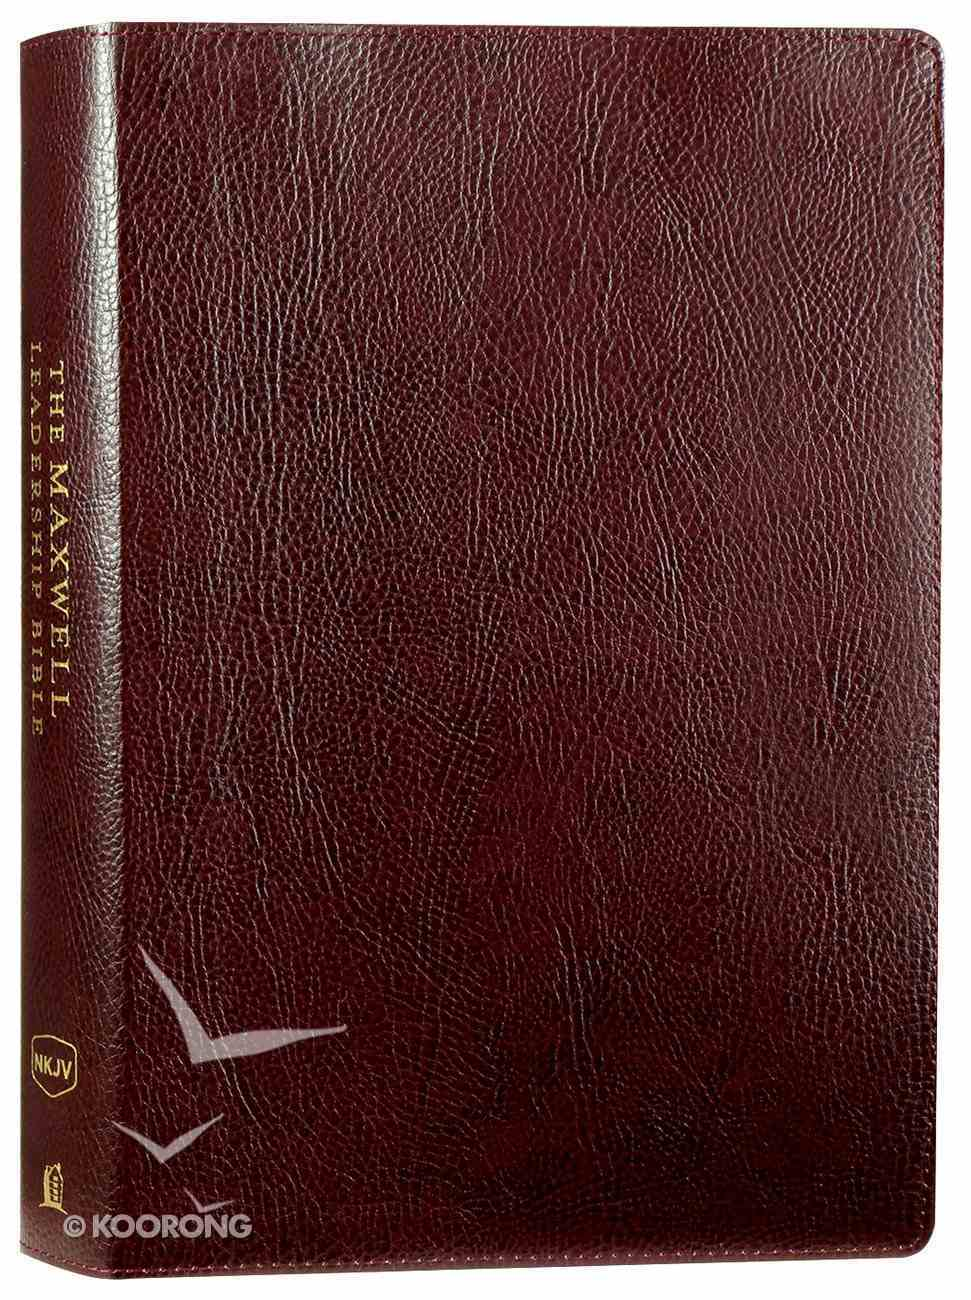 NKJV Maxwell Leadership Bible Burgundy (Third Edition) Bonded Leather